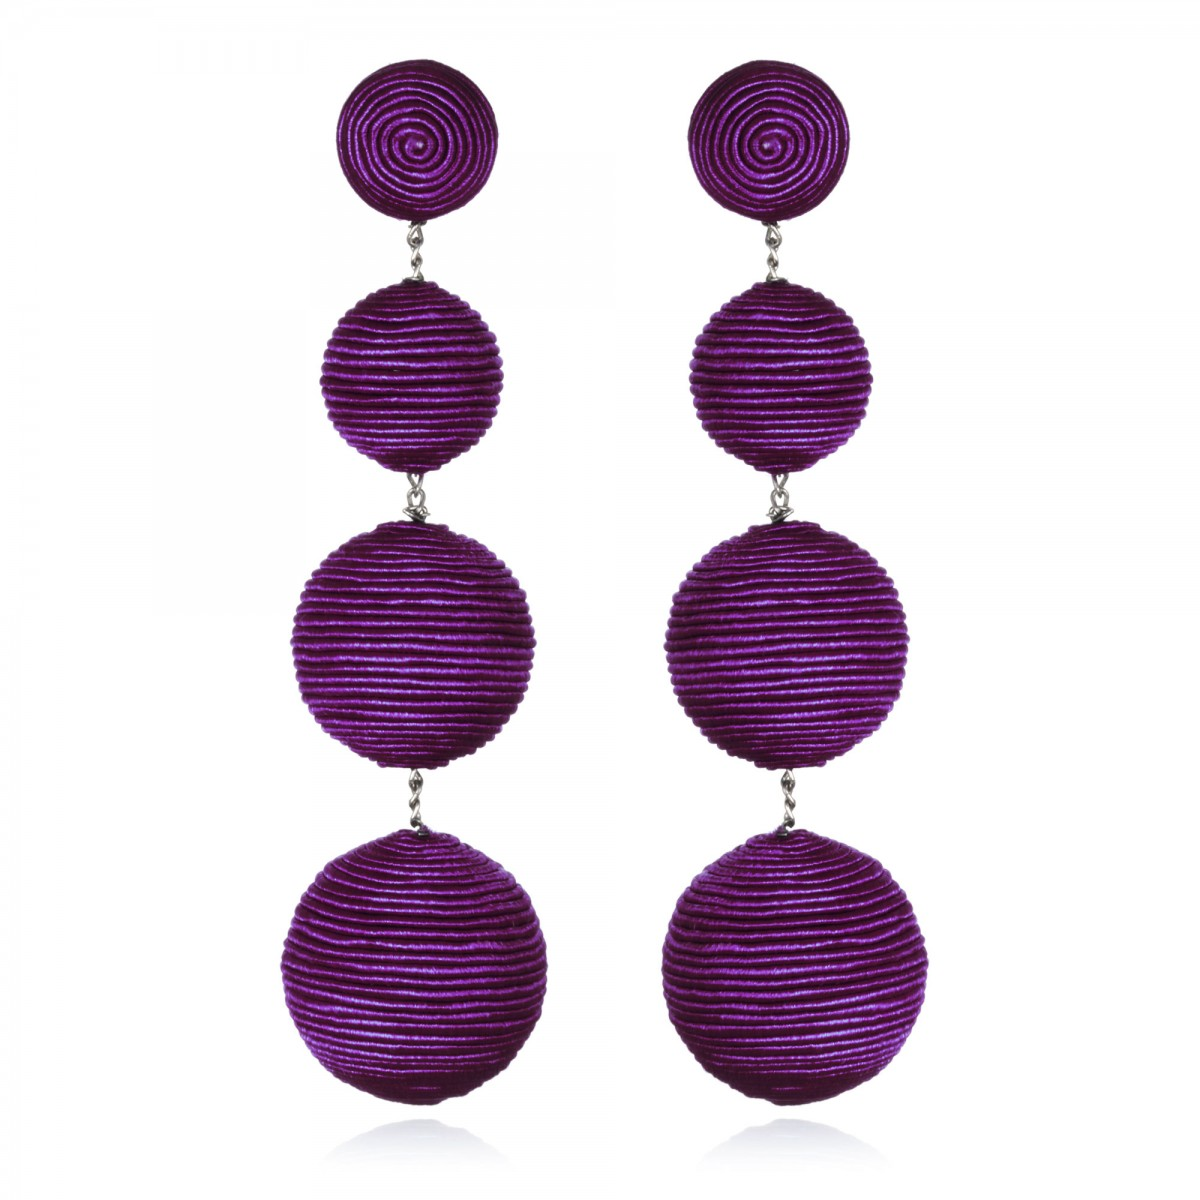 Plum Gumball Bon Bon Earrings by SUZANNA DAI